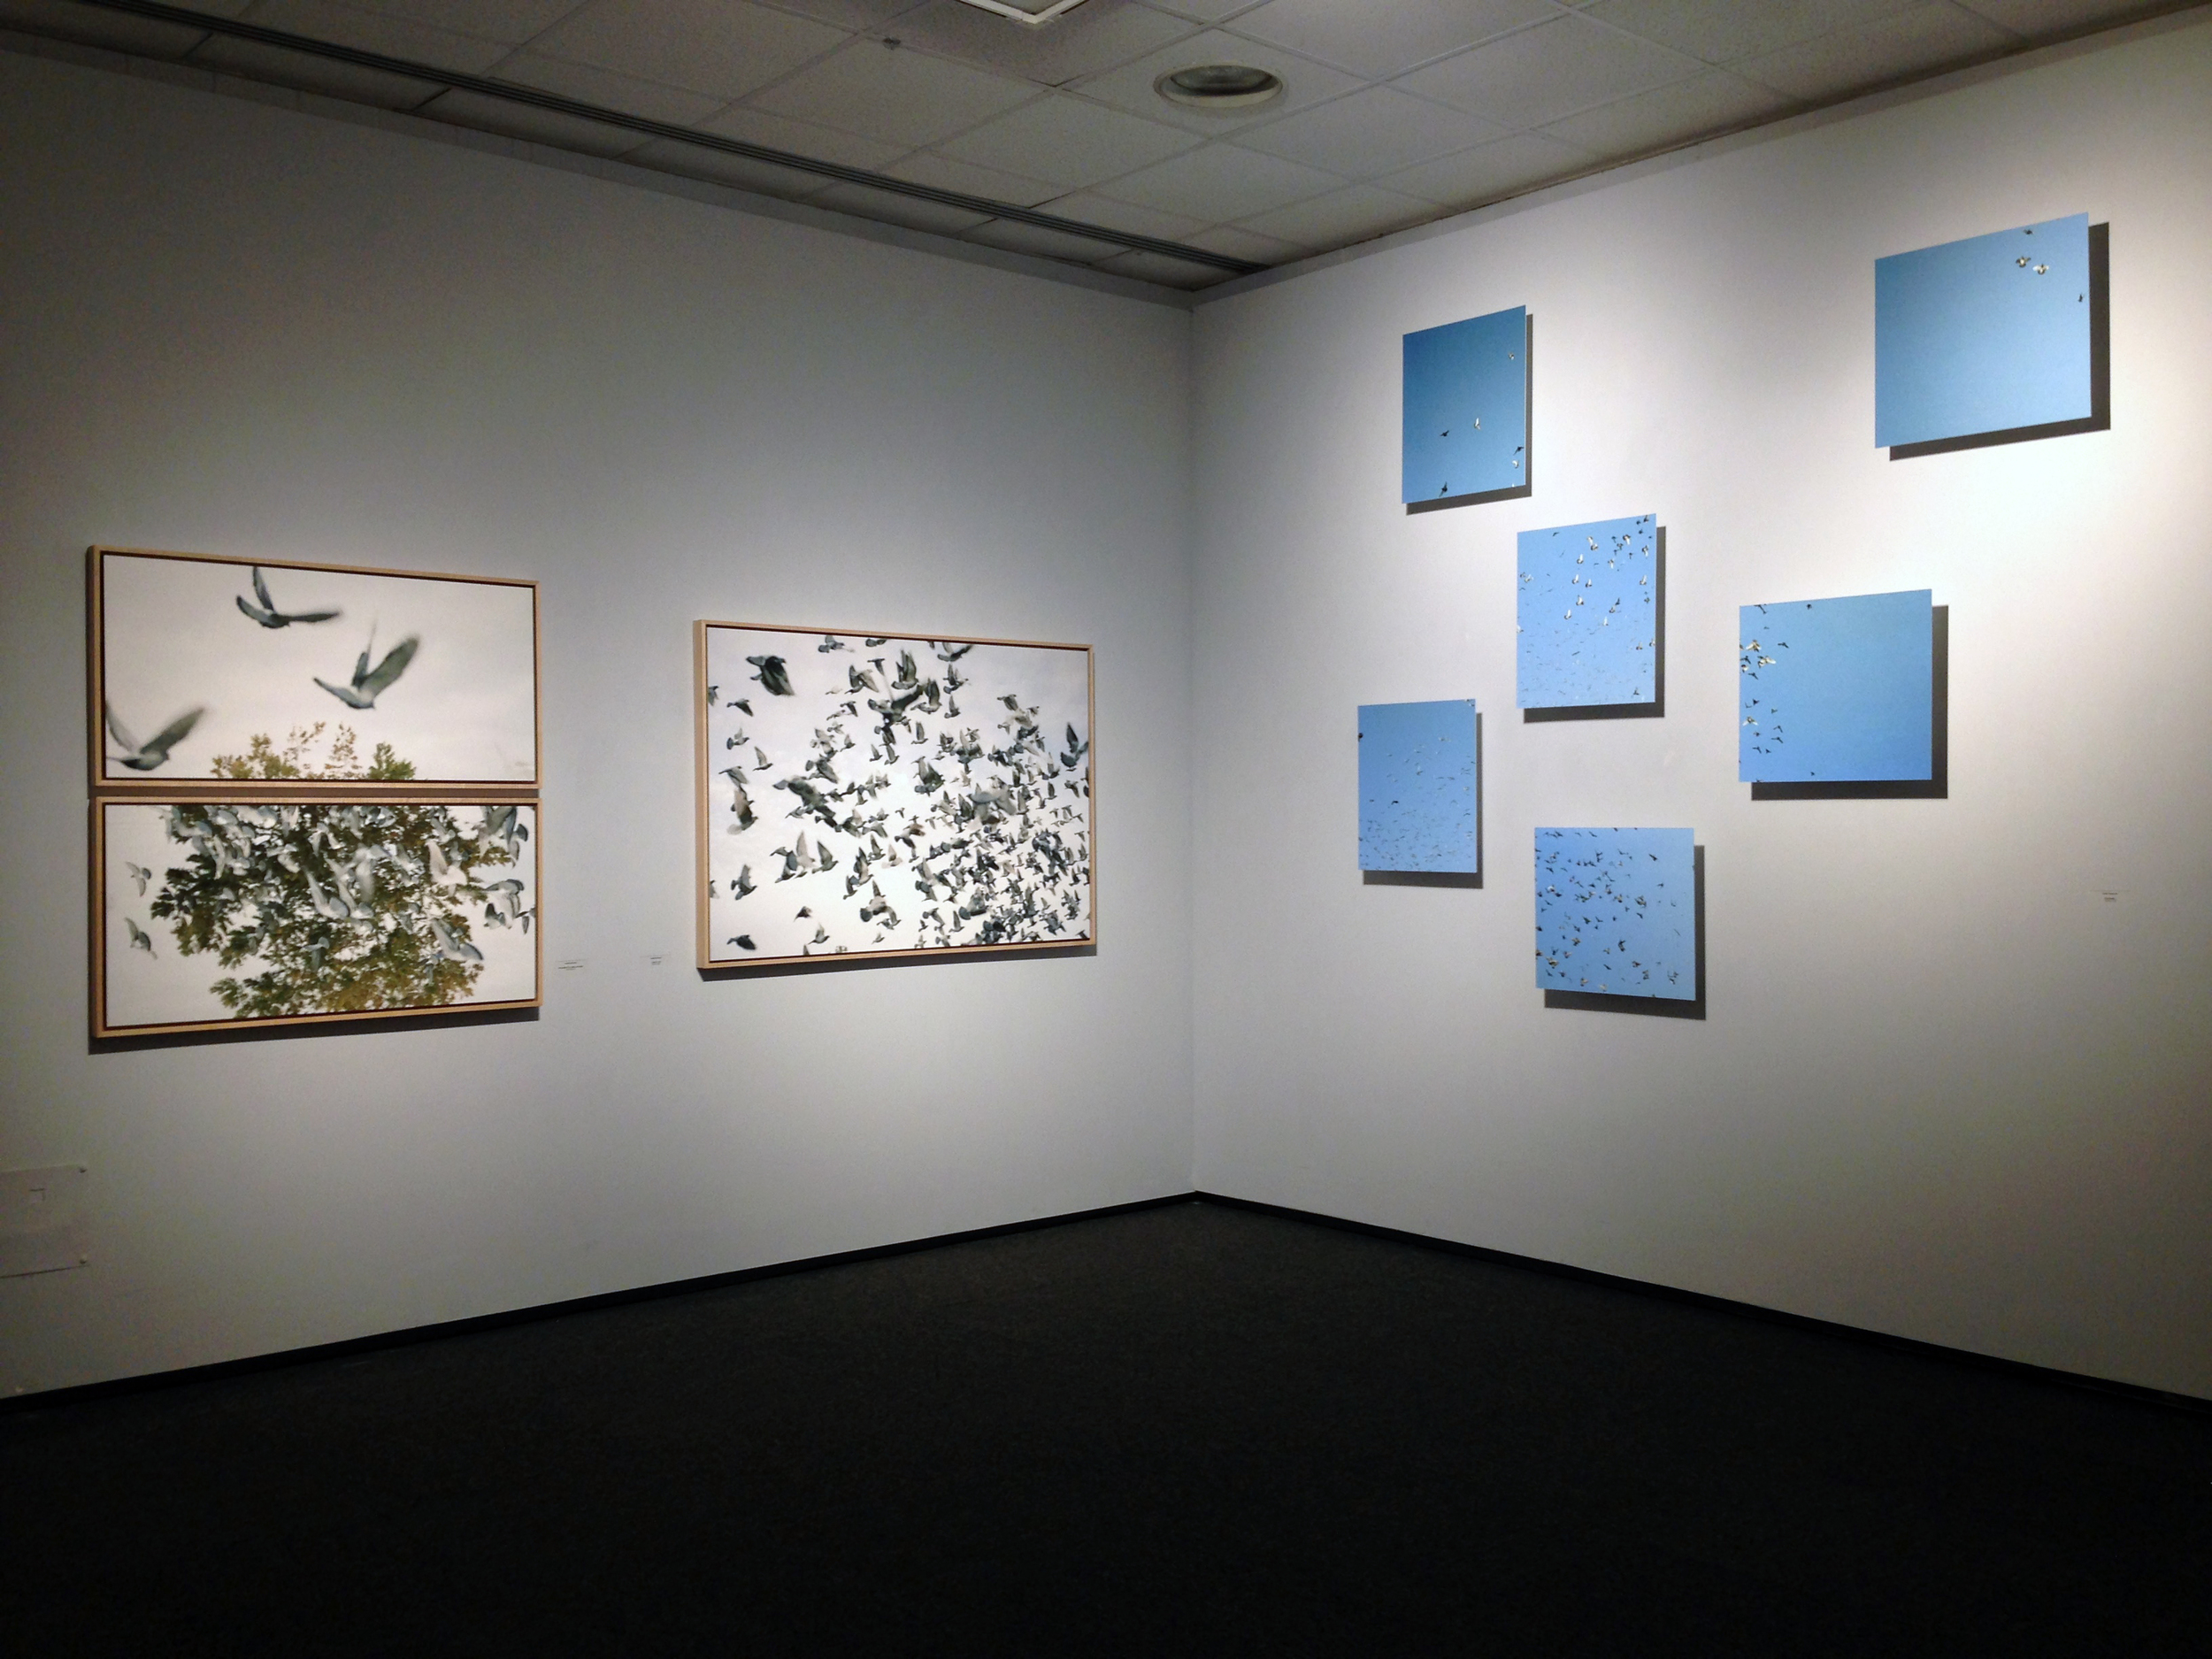 Illuded Perception Installation View